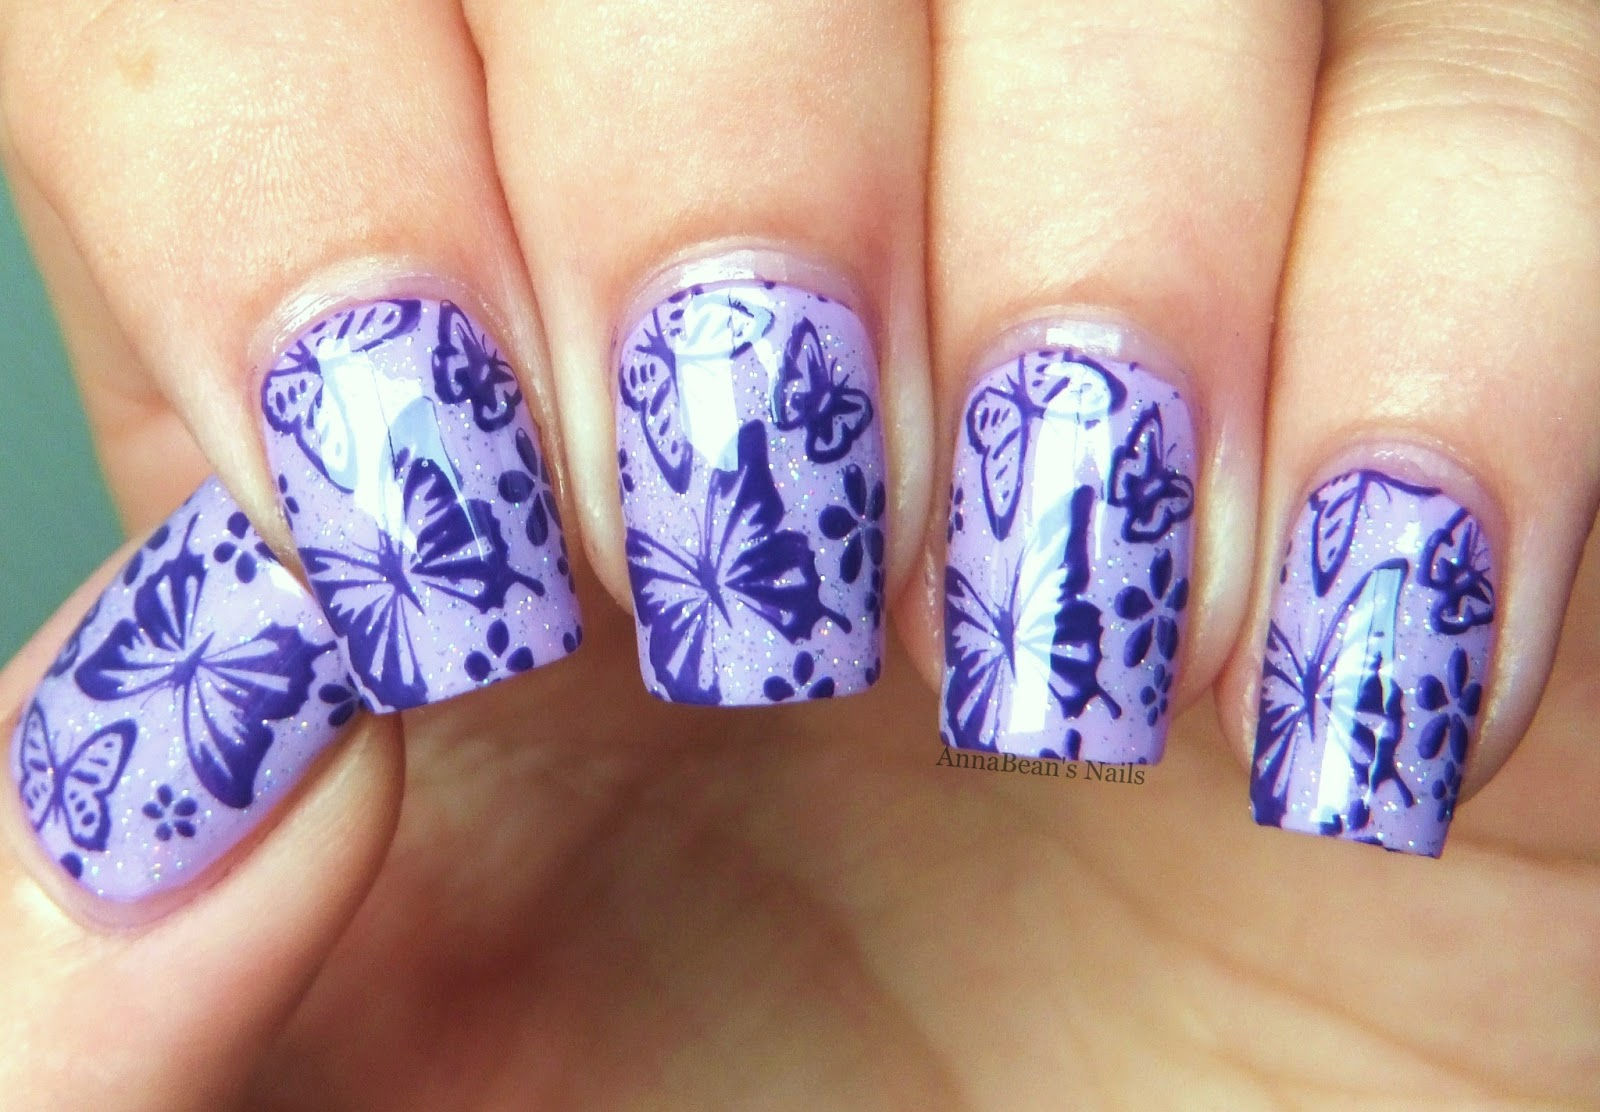 Annabeans nails butterfly nail art with pueen nails inc upper that was officially my favourite nail art prinsesfo Choice Image